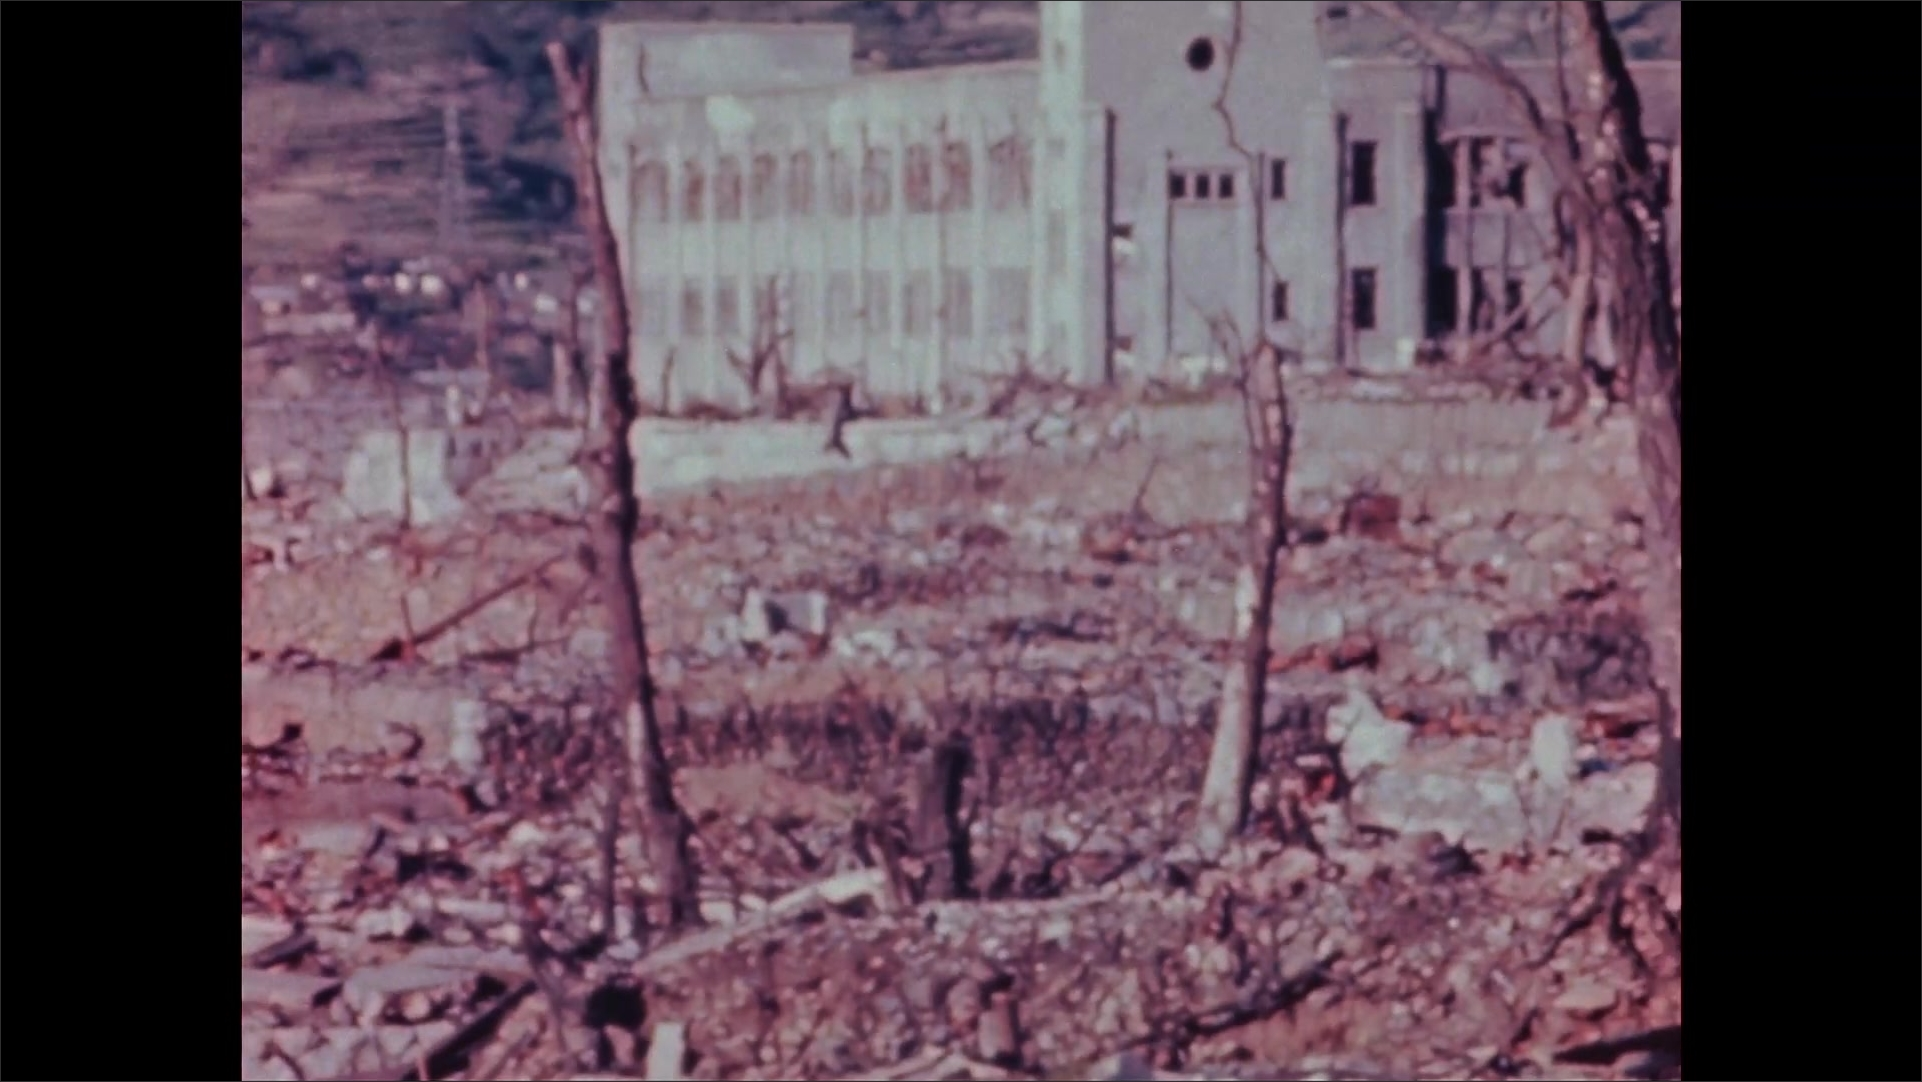 1940s Nagasaki: Mountains, terraced hillside, dirt, rubble, broken trees. Remains of buildings, windows blown out. Chimney, concrete slabs, person squats, stands.